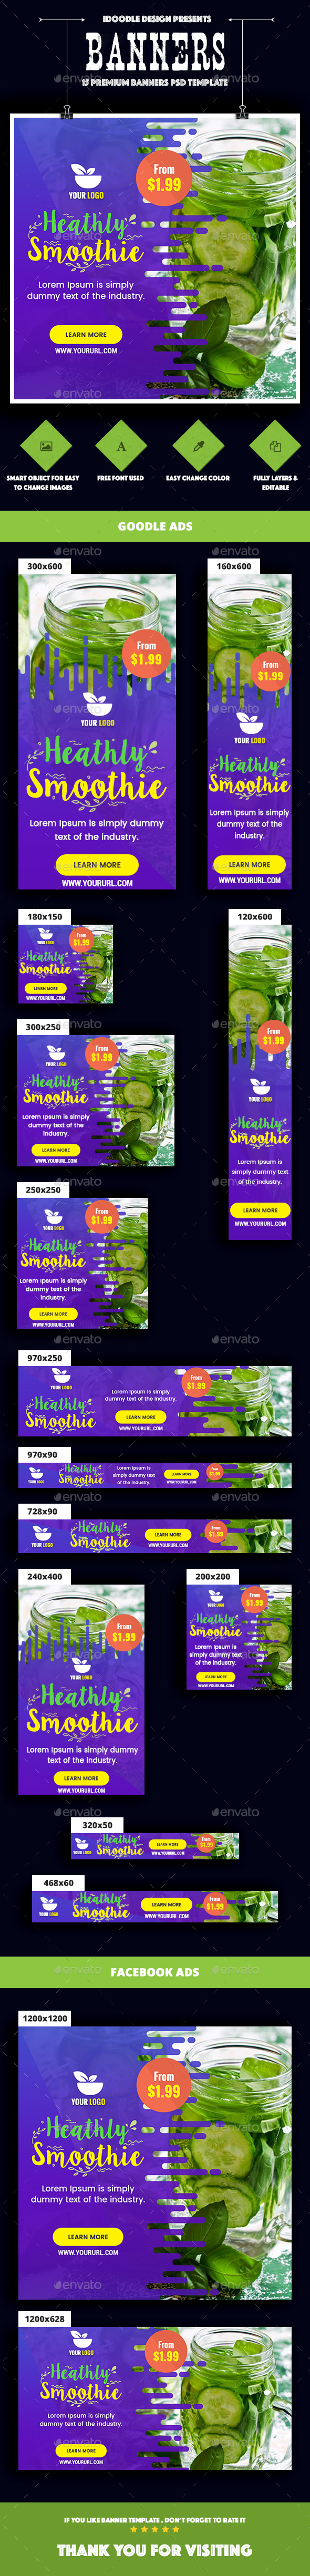 Smoothie Bar & Healthy Drinks Shop Banners Ad - Banners & Ads Web Elements